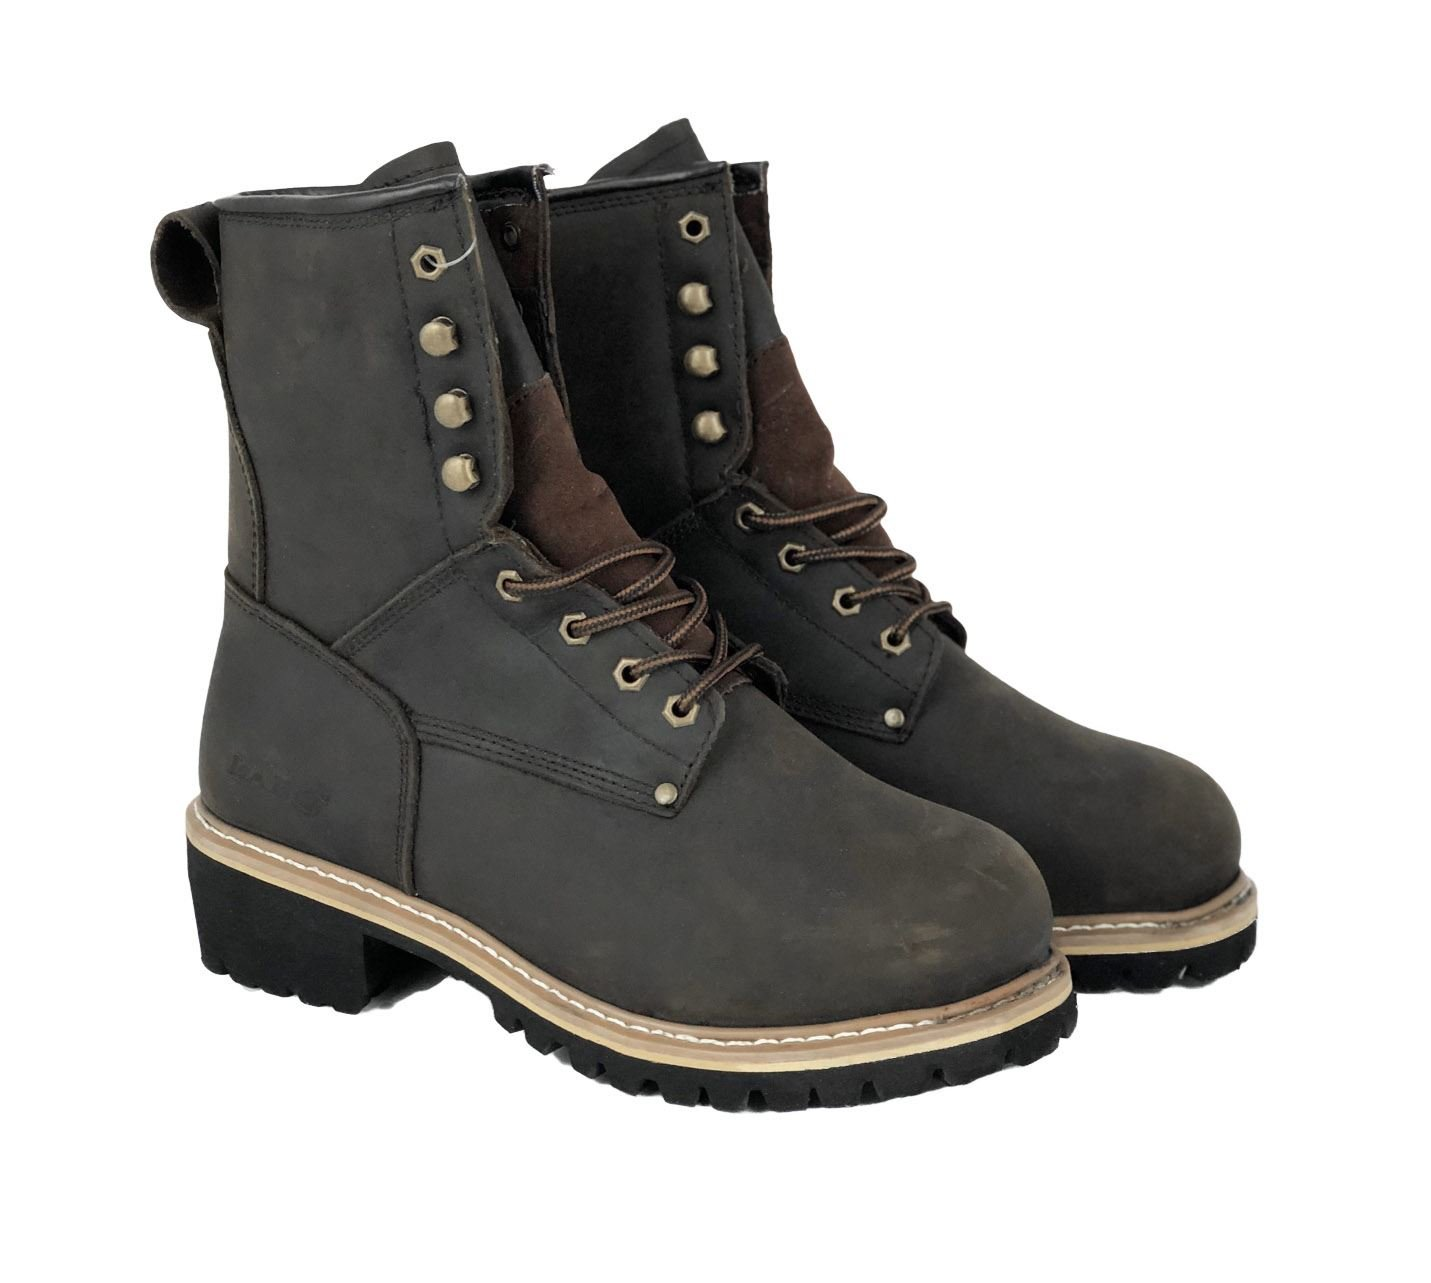 LABO Steel Toed Working Boots - 893S Brown 10